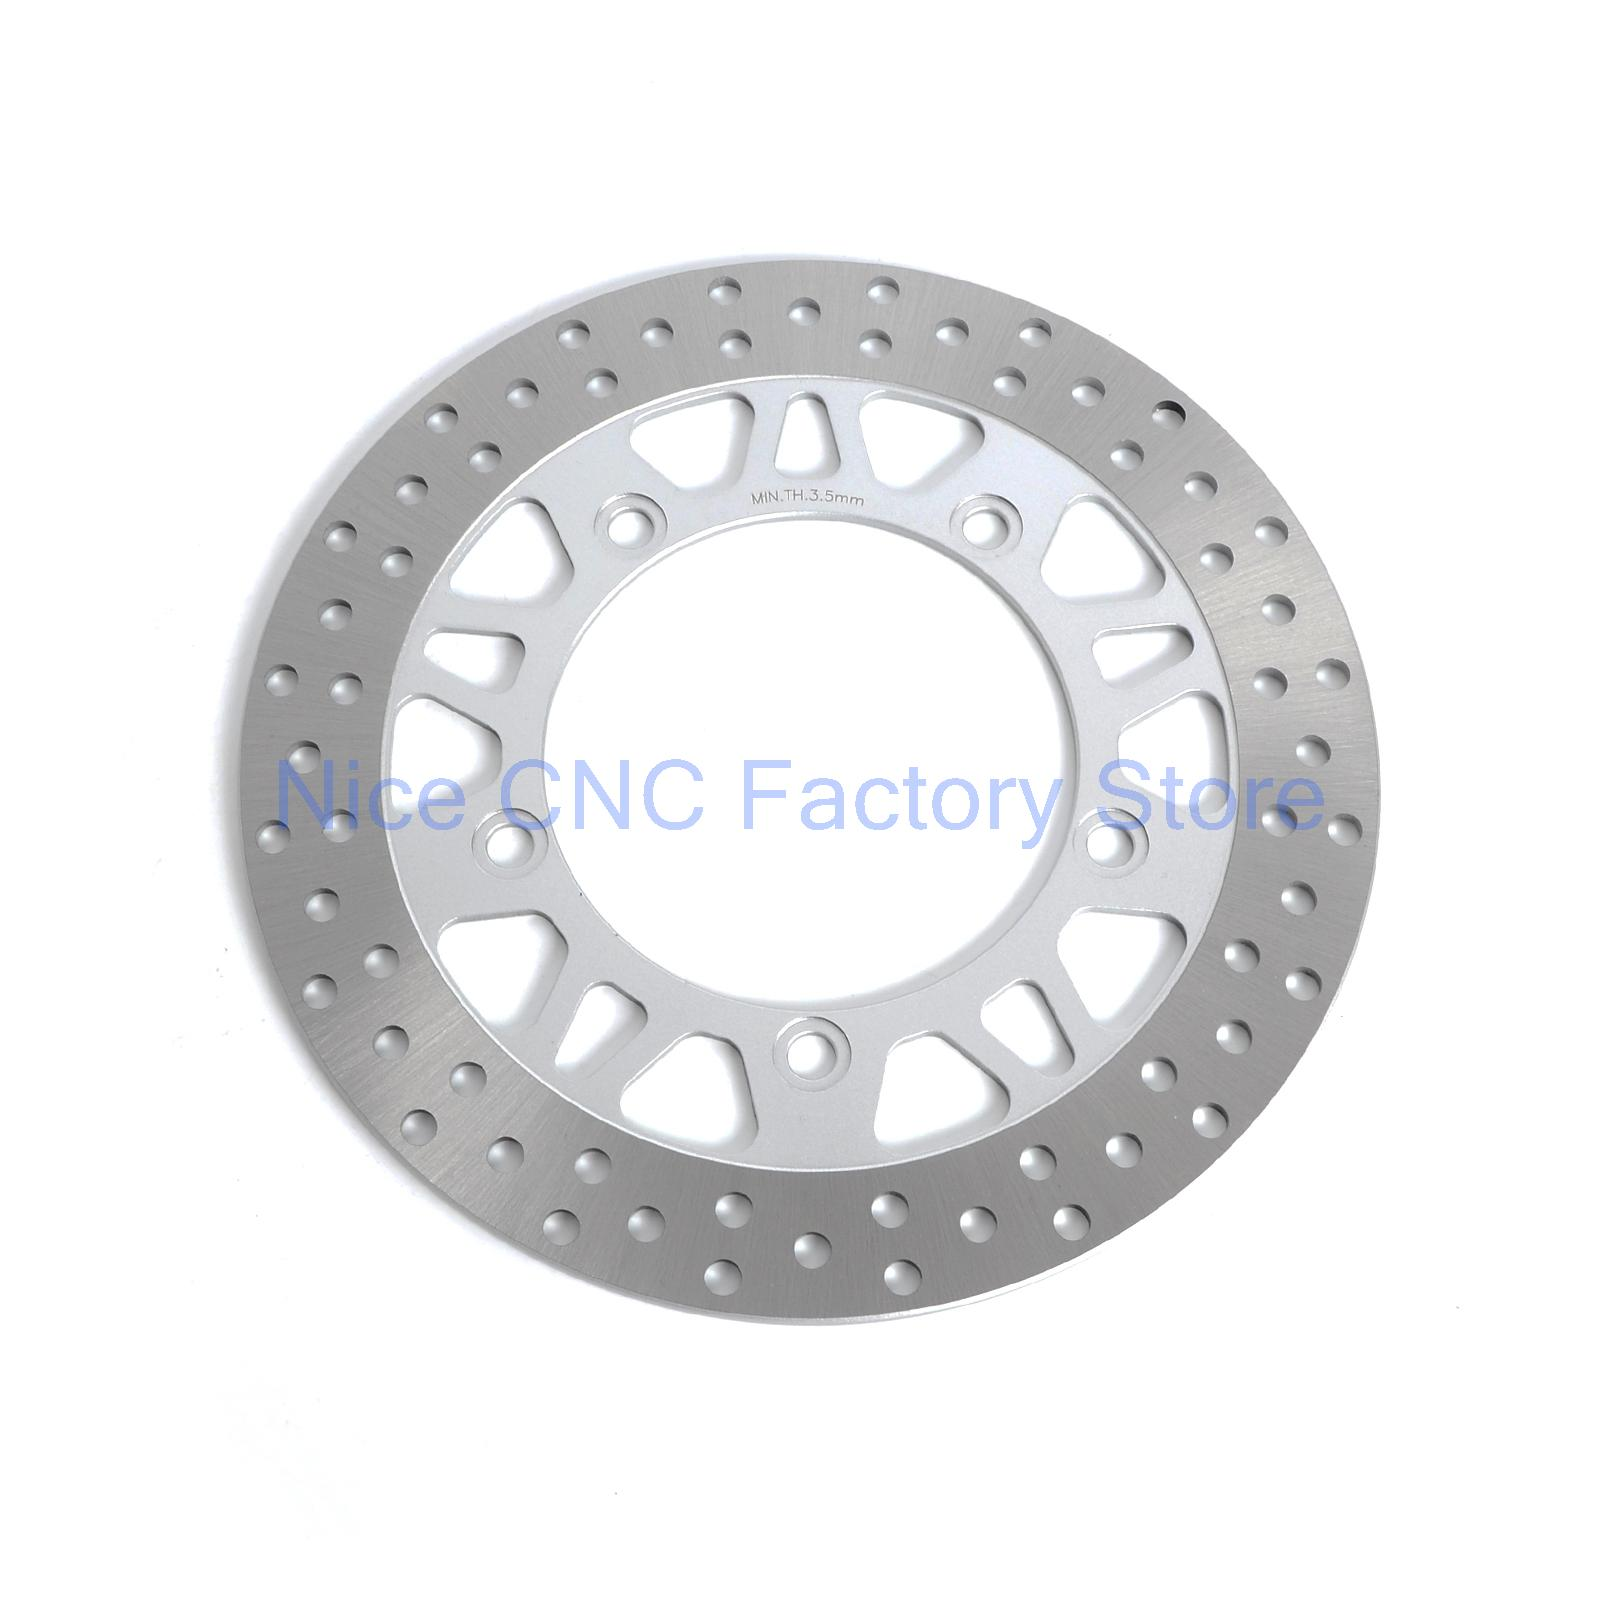 Motorcycle Front  Rotor Brake Disc For Suzuki  AN250 Skywave 2007 2008 AN400 Burgman AN 400 2007 - 2013 209 2010 2011 2012 NEW free shipping motorcycle brake disc rotor fit for suzuki dl1000 v strom 2002 2010 front